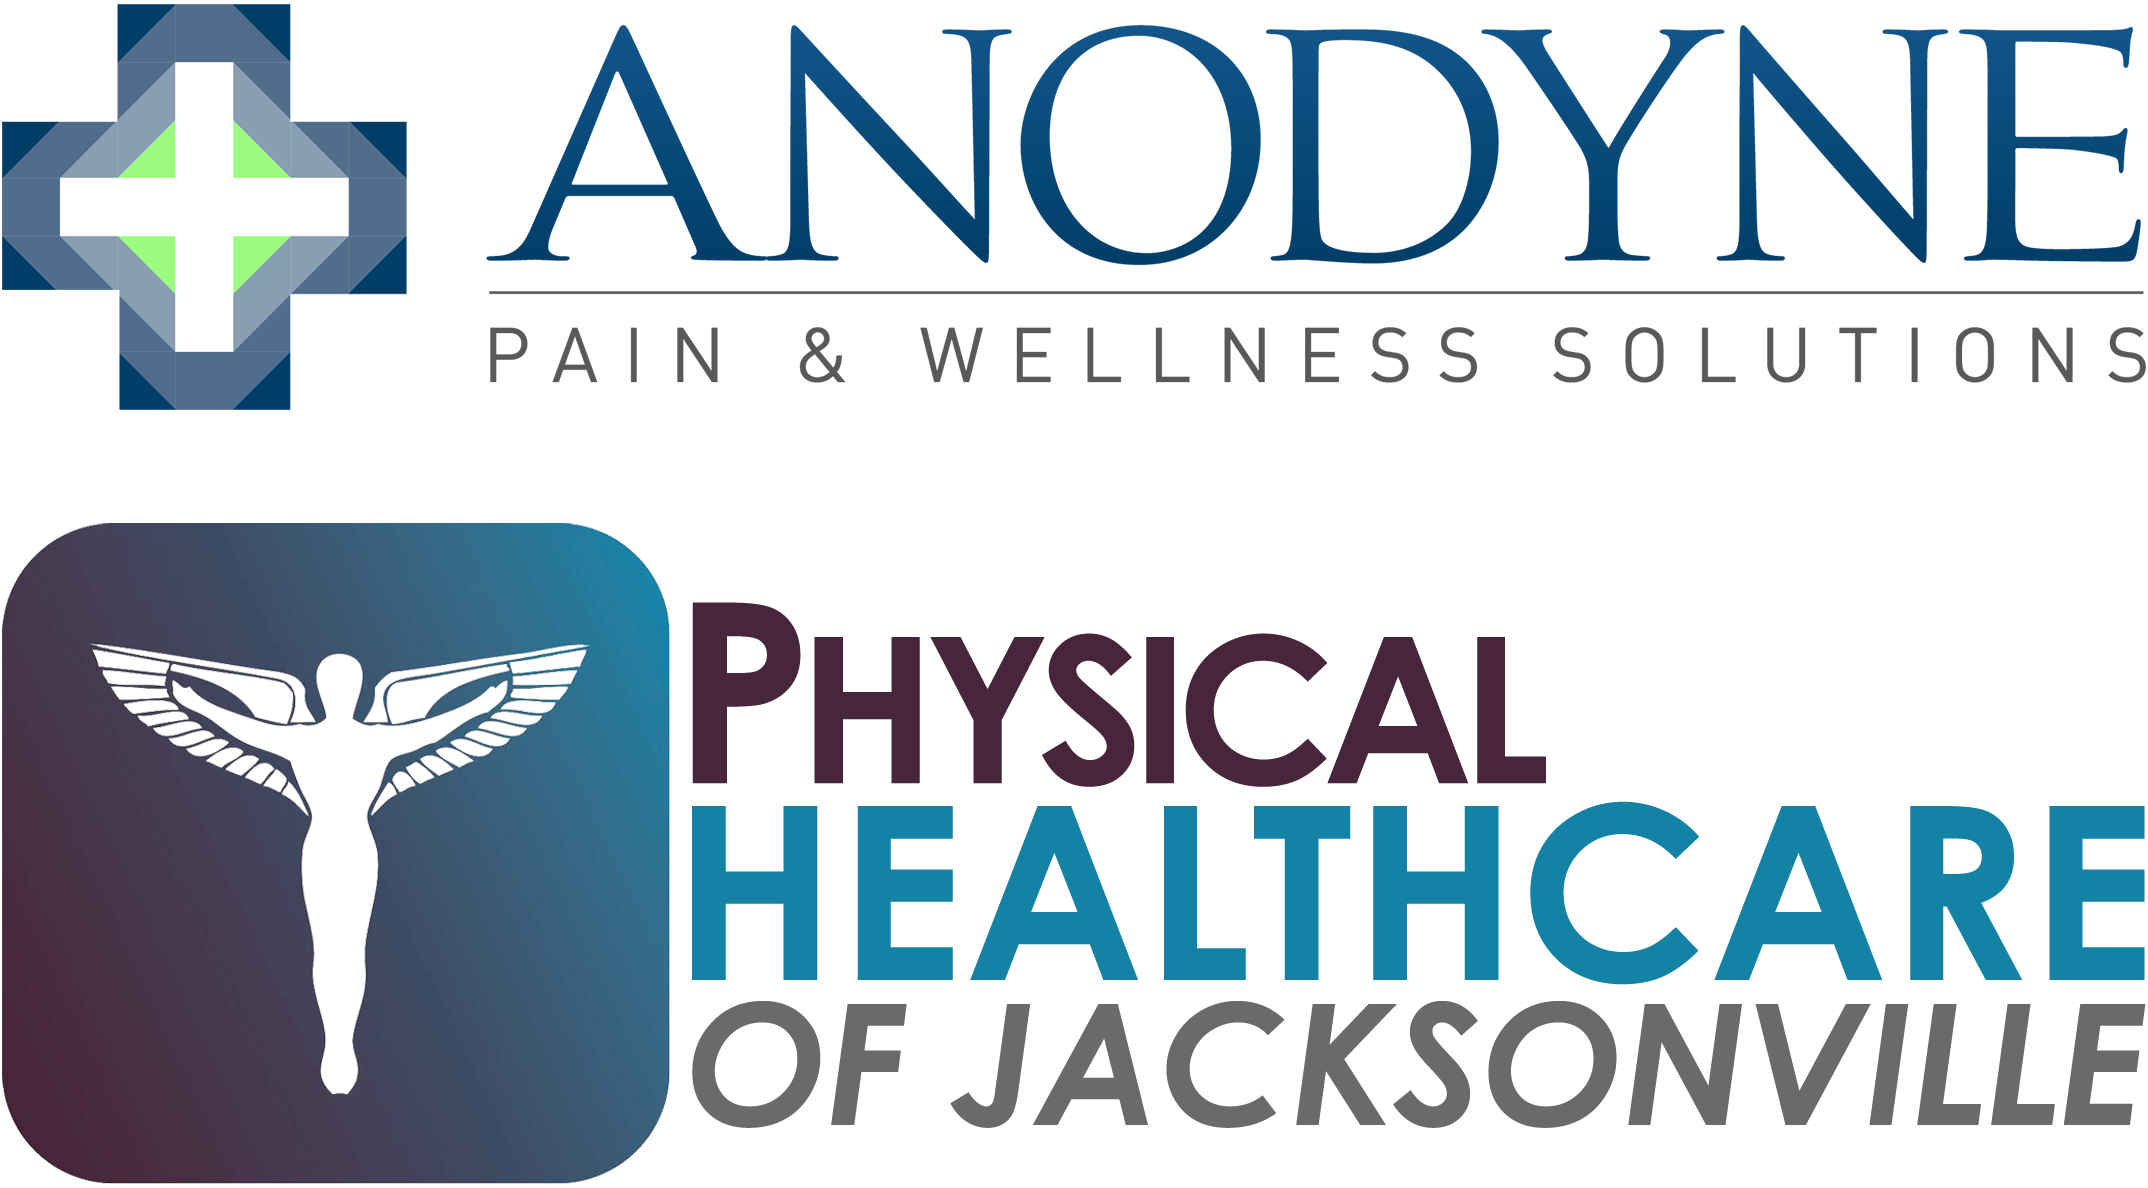 Physical Healthcare of Jacksonville